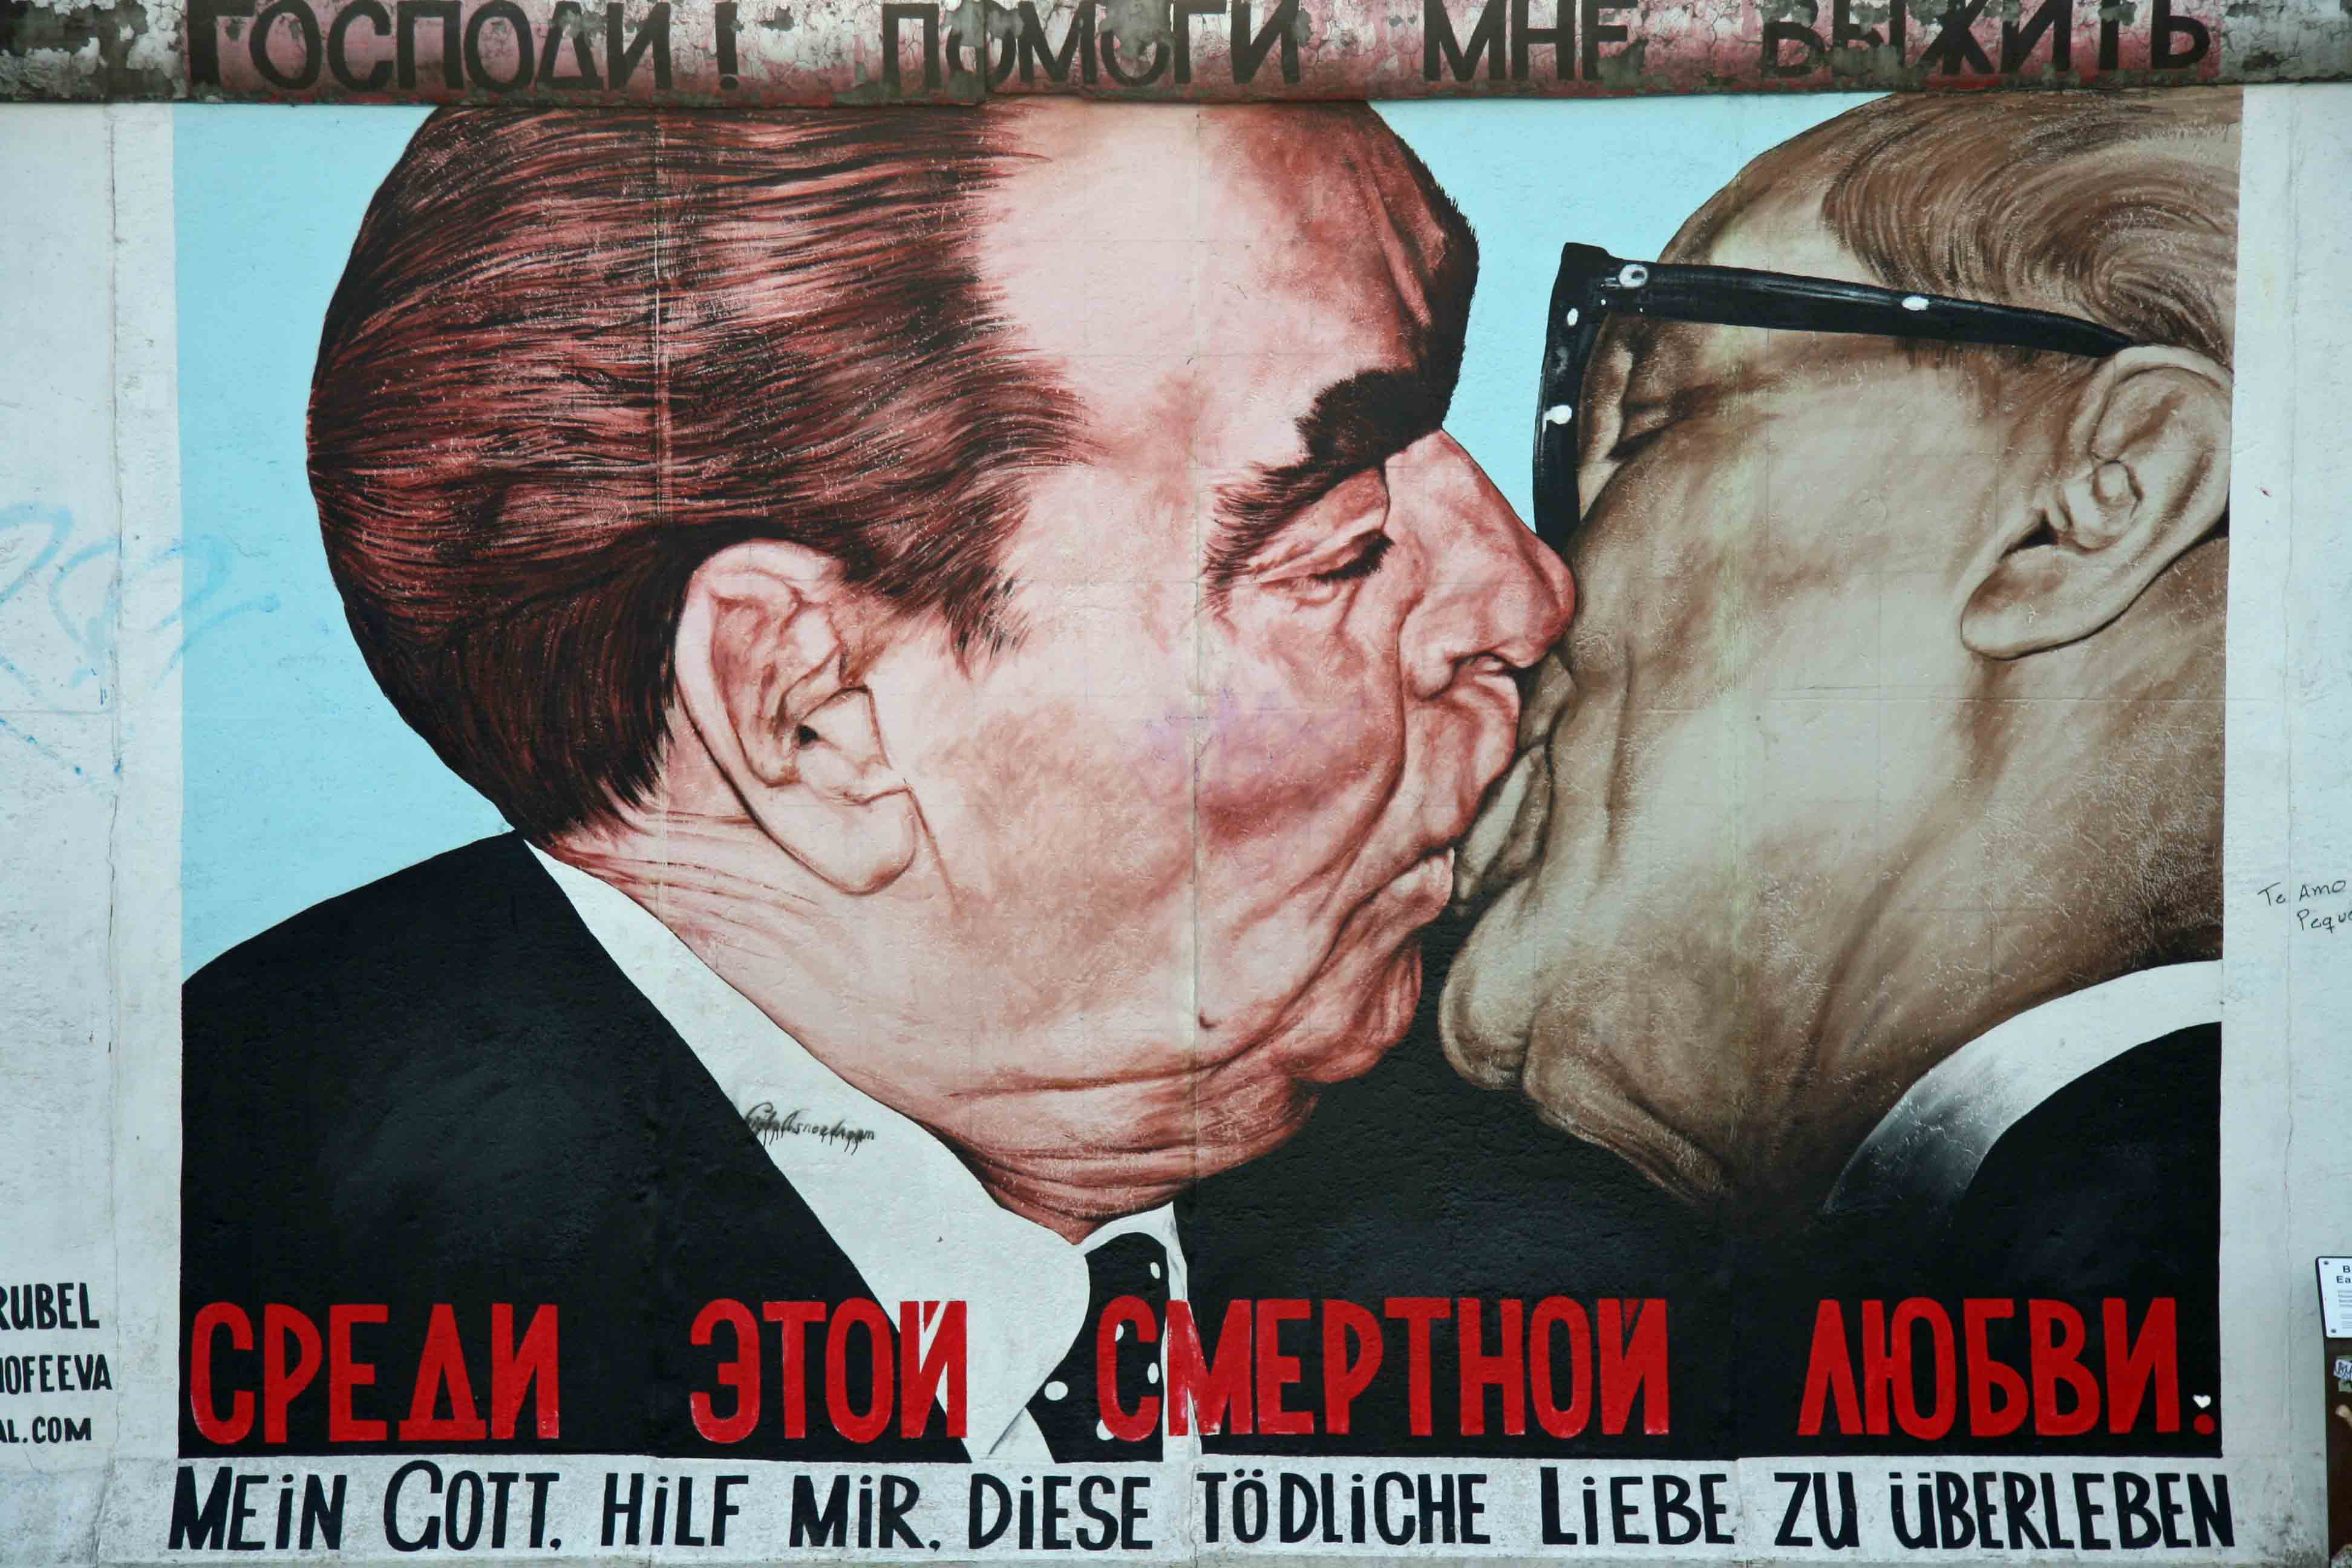 Soviet premier Leonid Brezhnev embraces East German president Axel Honecker